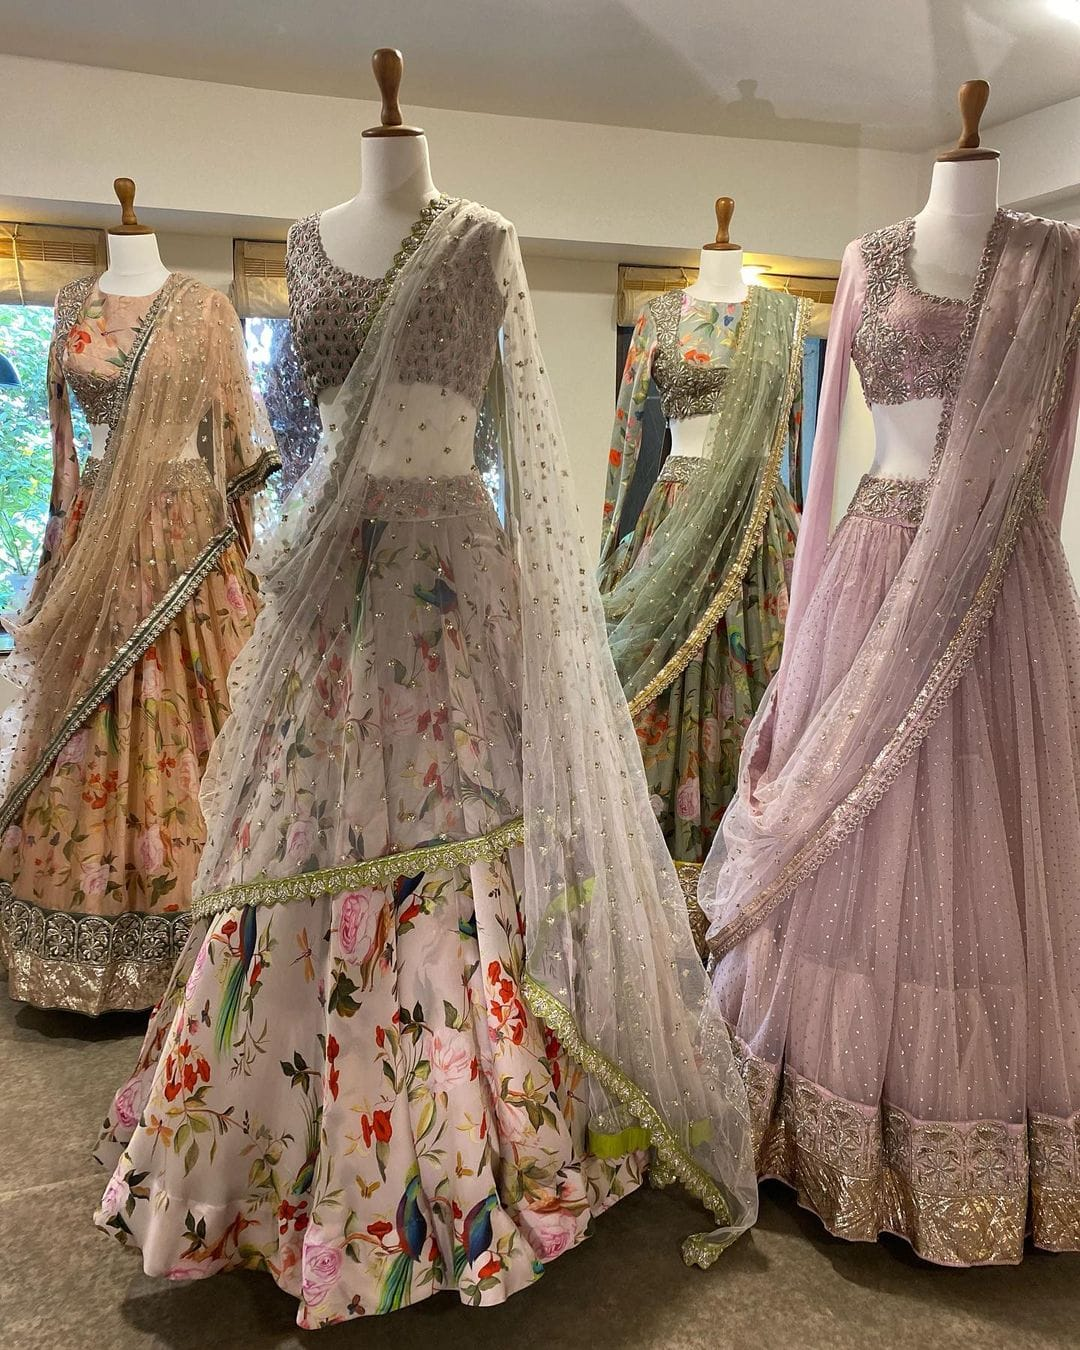 A mix of floral and exquisite embroideries in soft pastels perfect for the intimate summer wedding.  2021-06-14